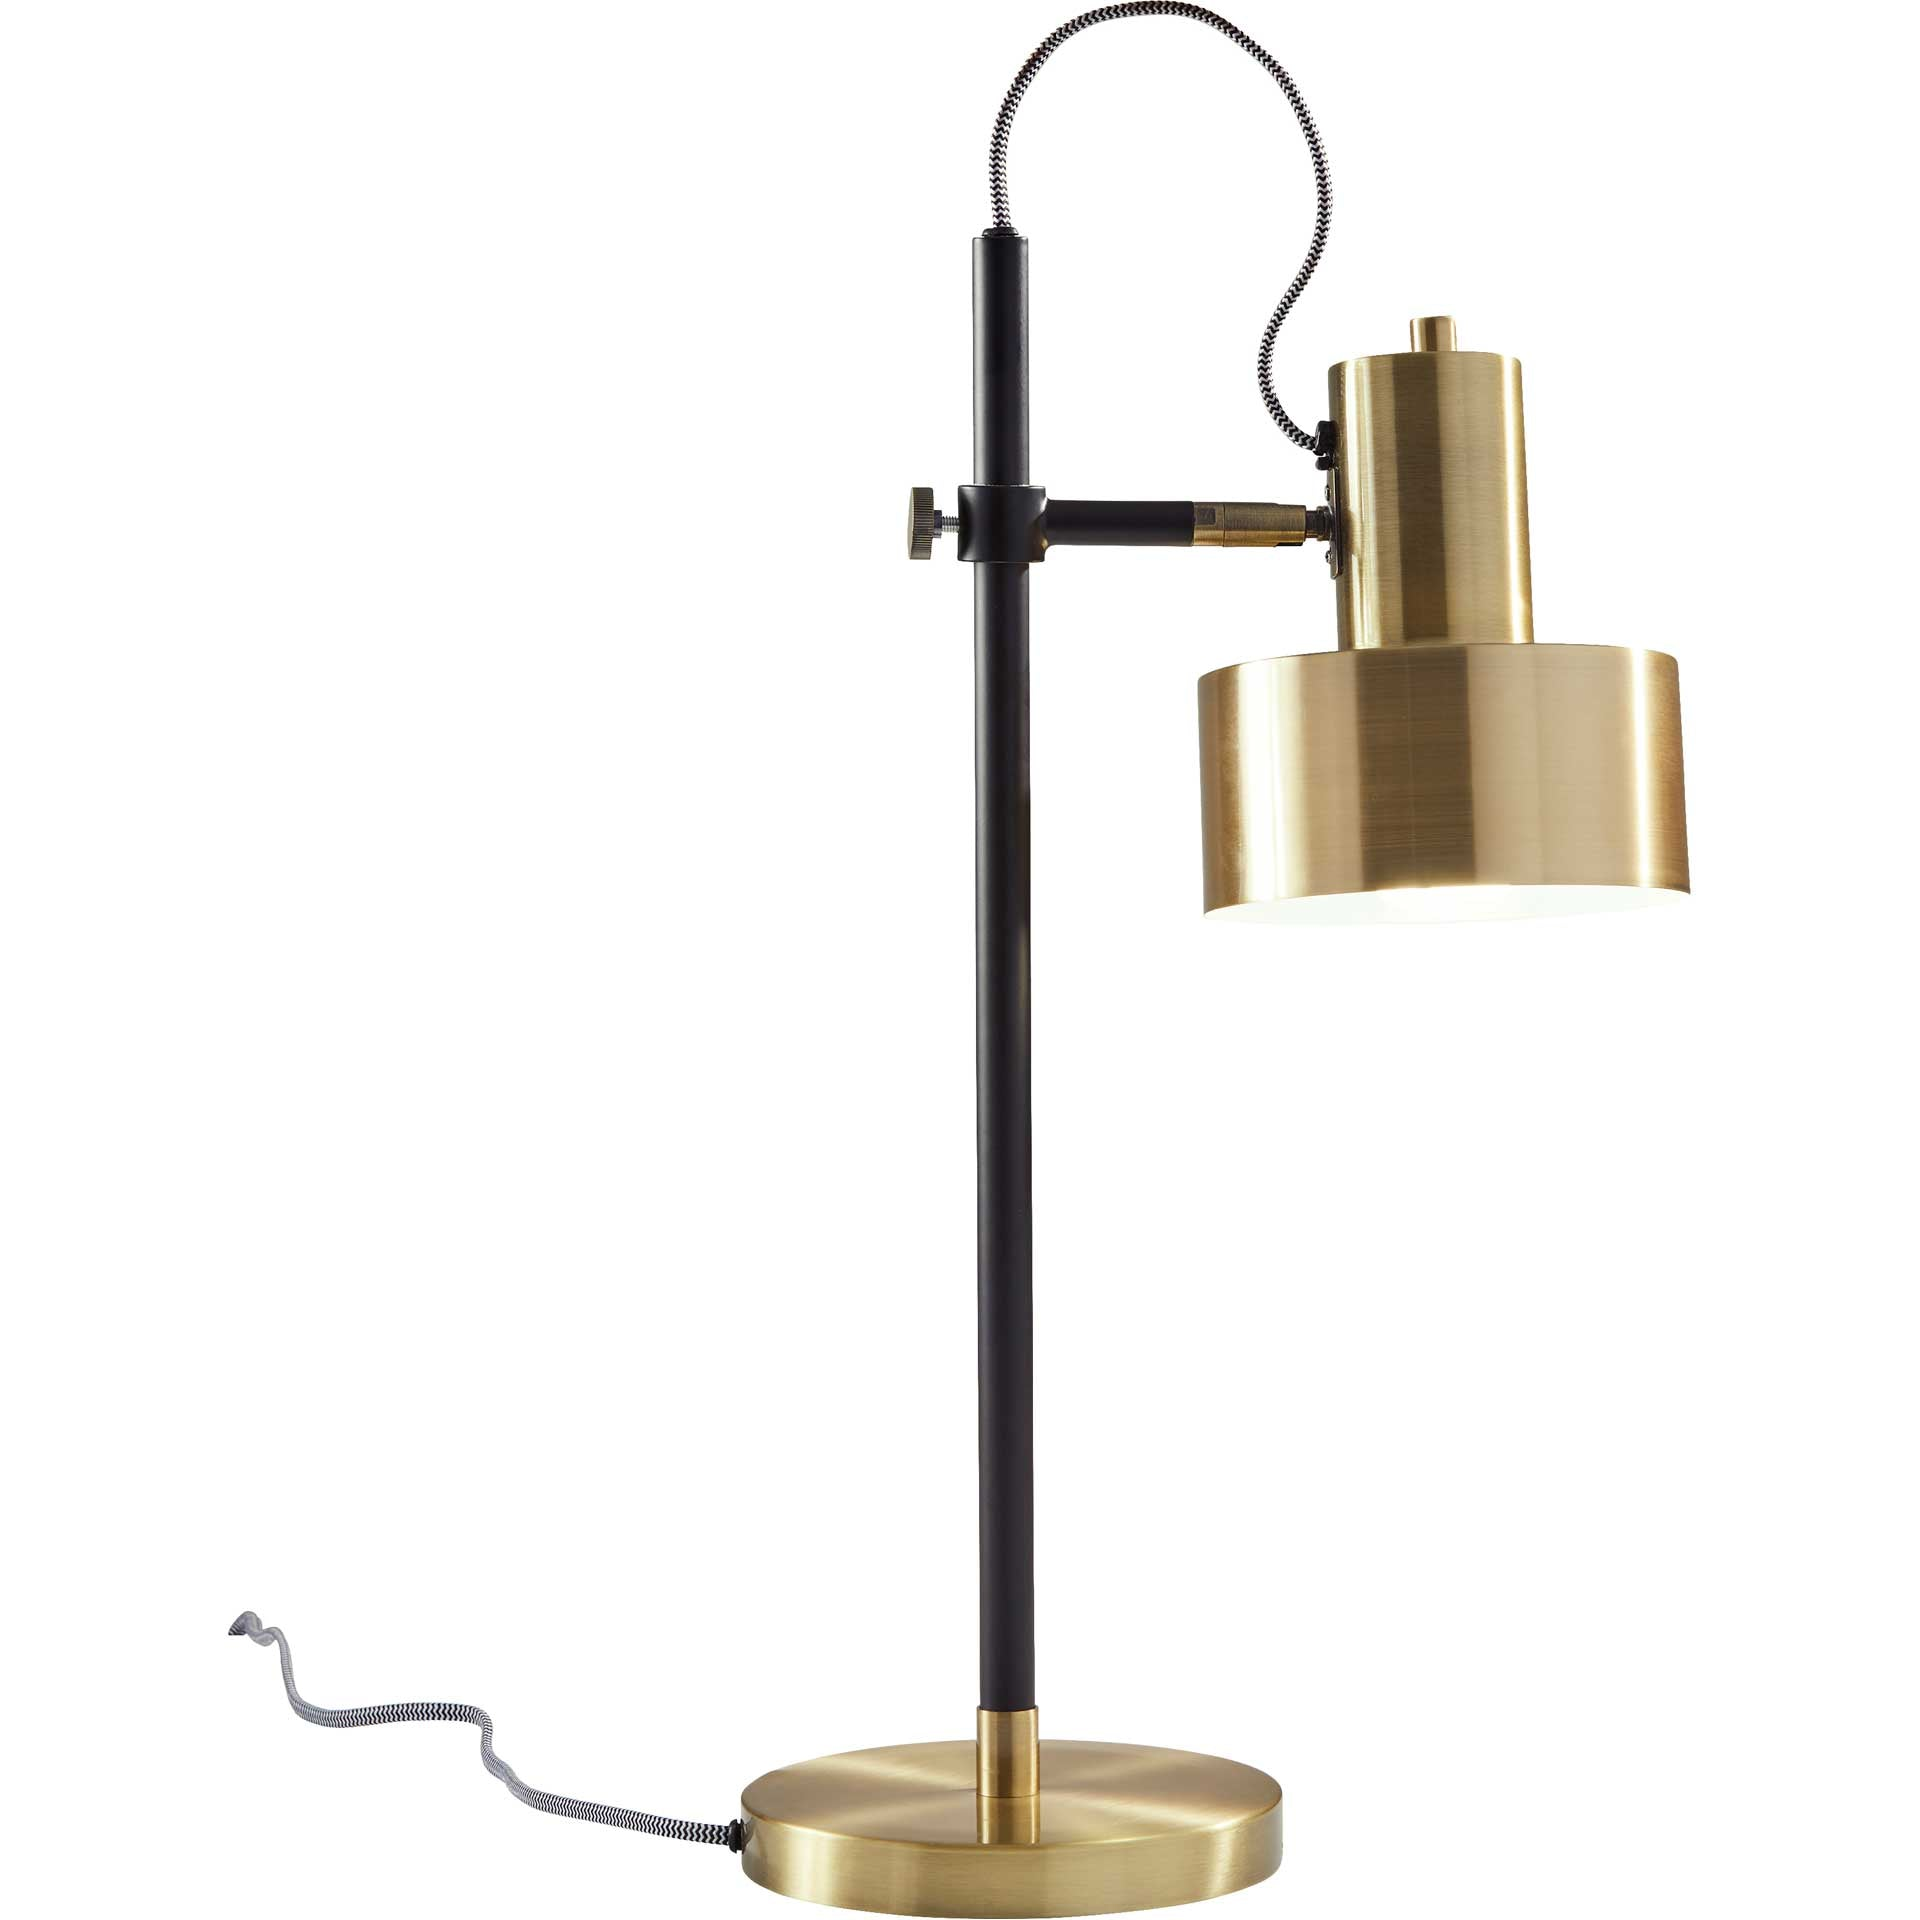 Clamart Desk Lamp Brass/Black